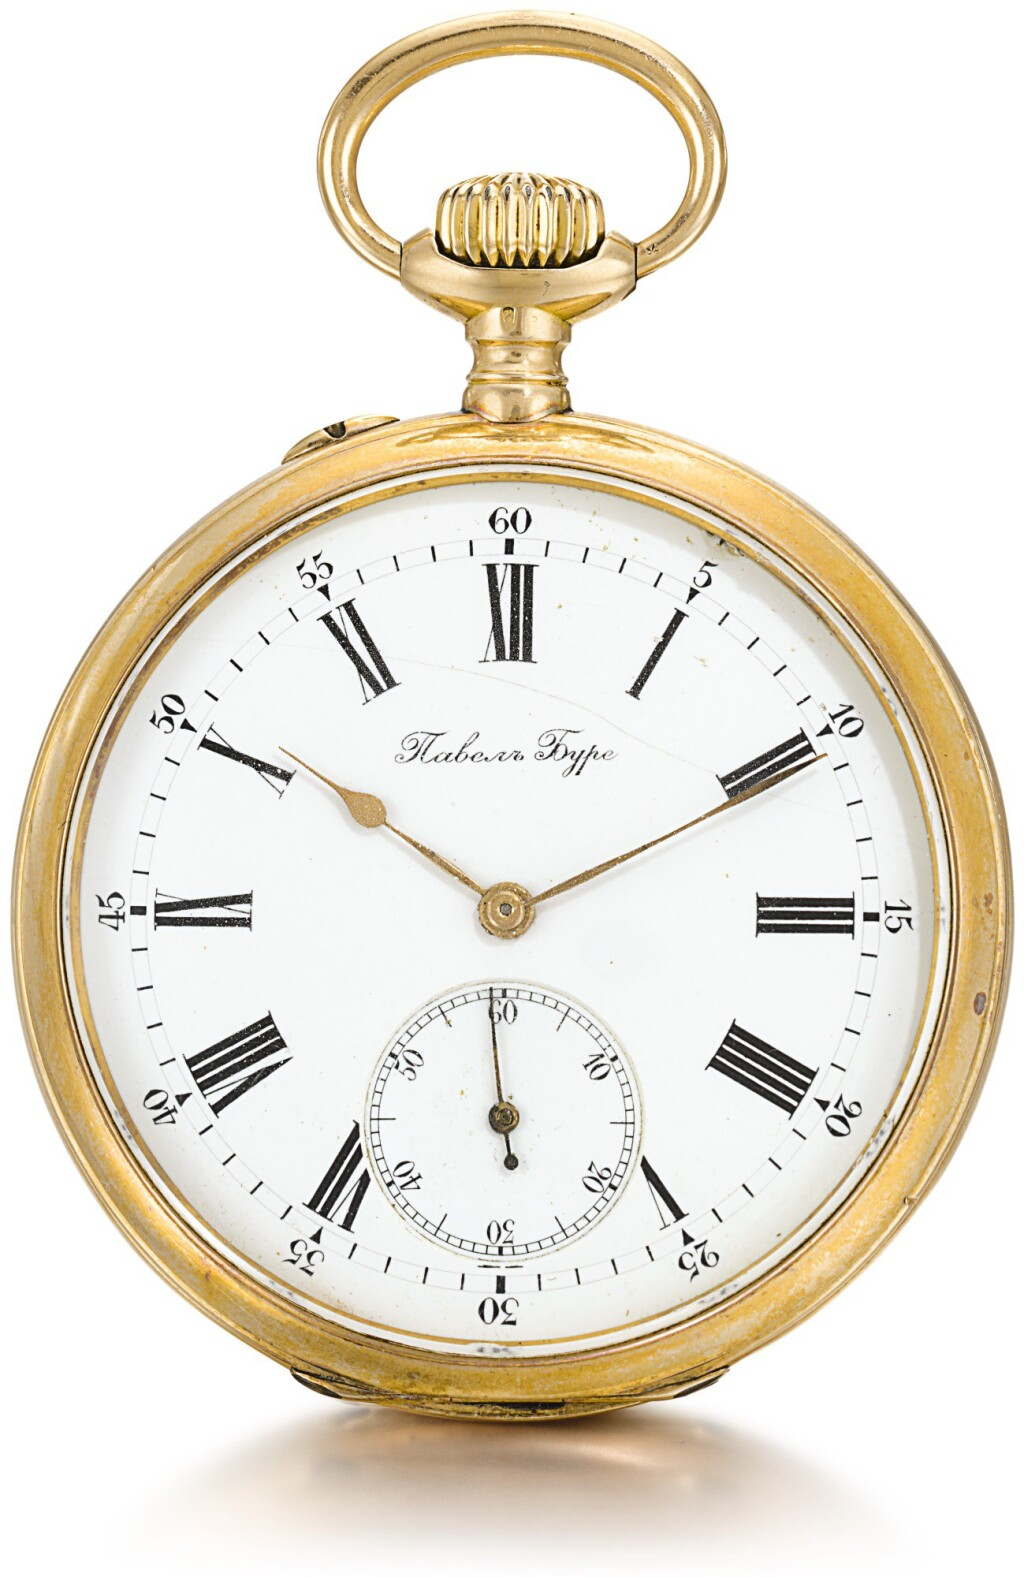 PAUL BUHRÉ | A PINK GOLD OPEN-FACED KEYLESS LEVER WATCH FOR THE RUSSIAN MARKET  CIRCA 1900, NO. 128735